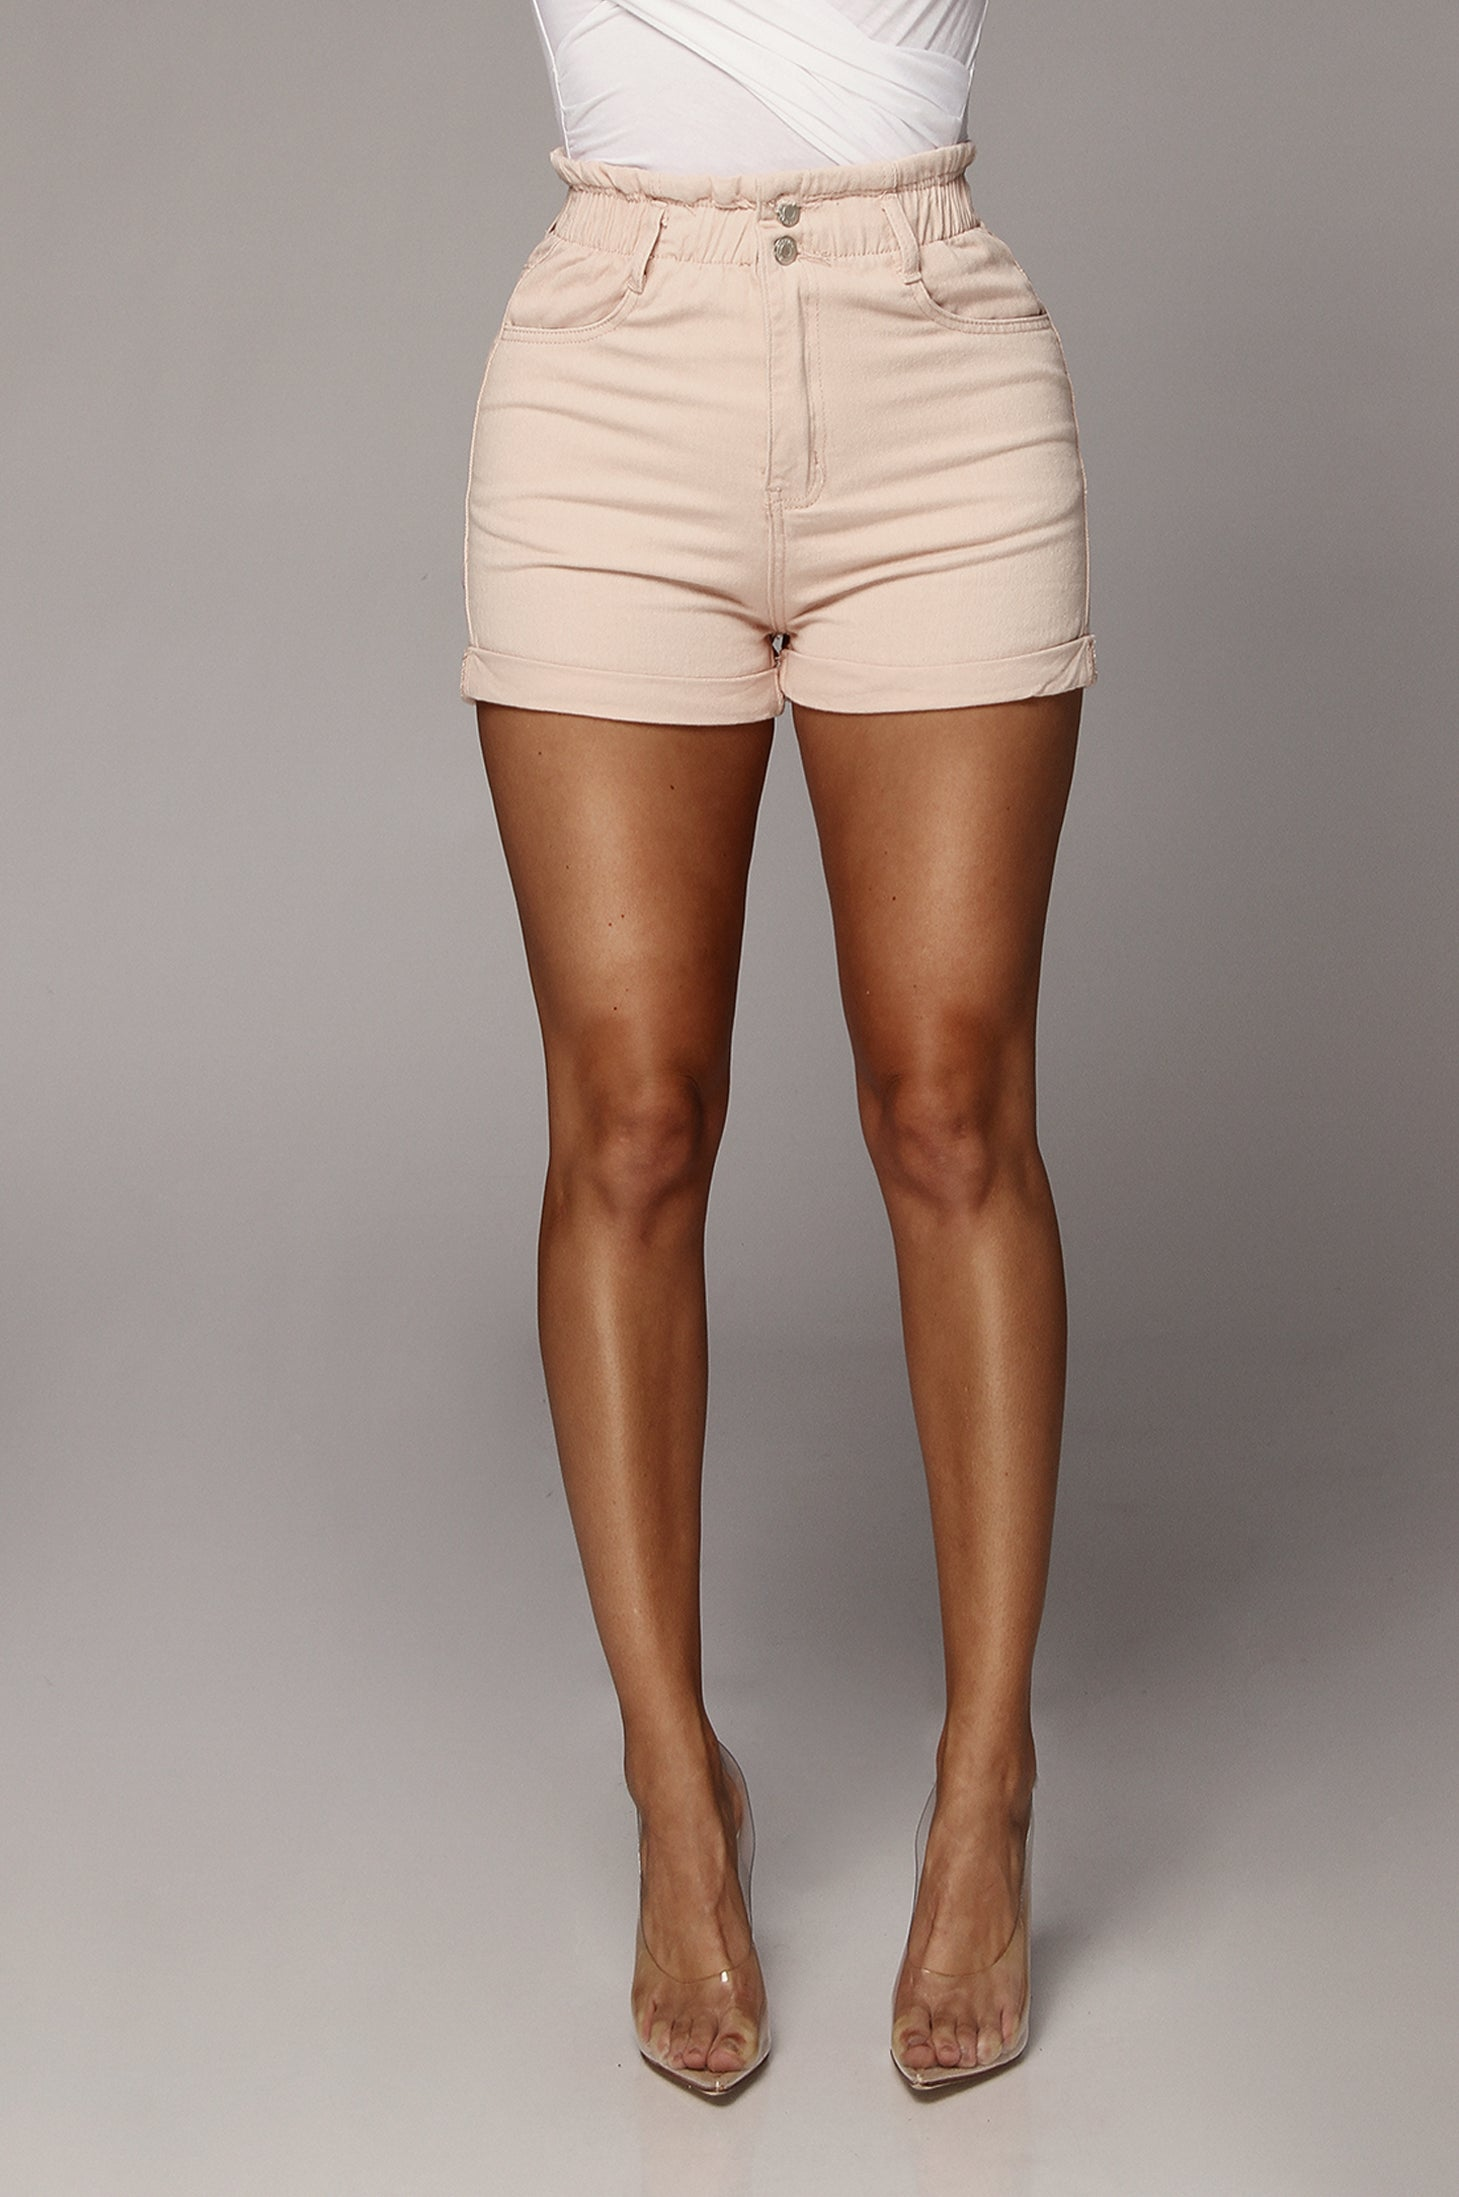 Dusty Rose Summer Solstice Shorts